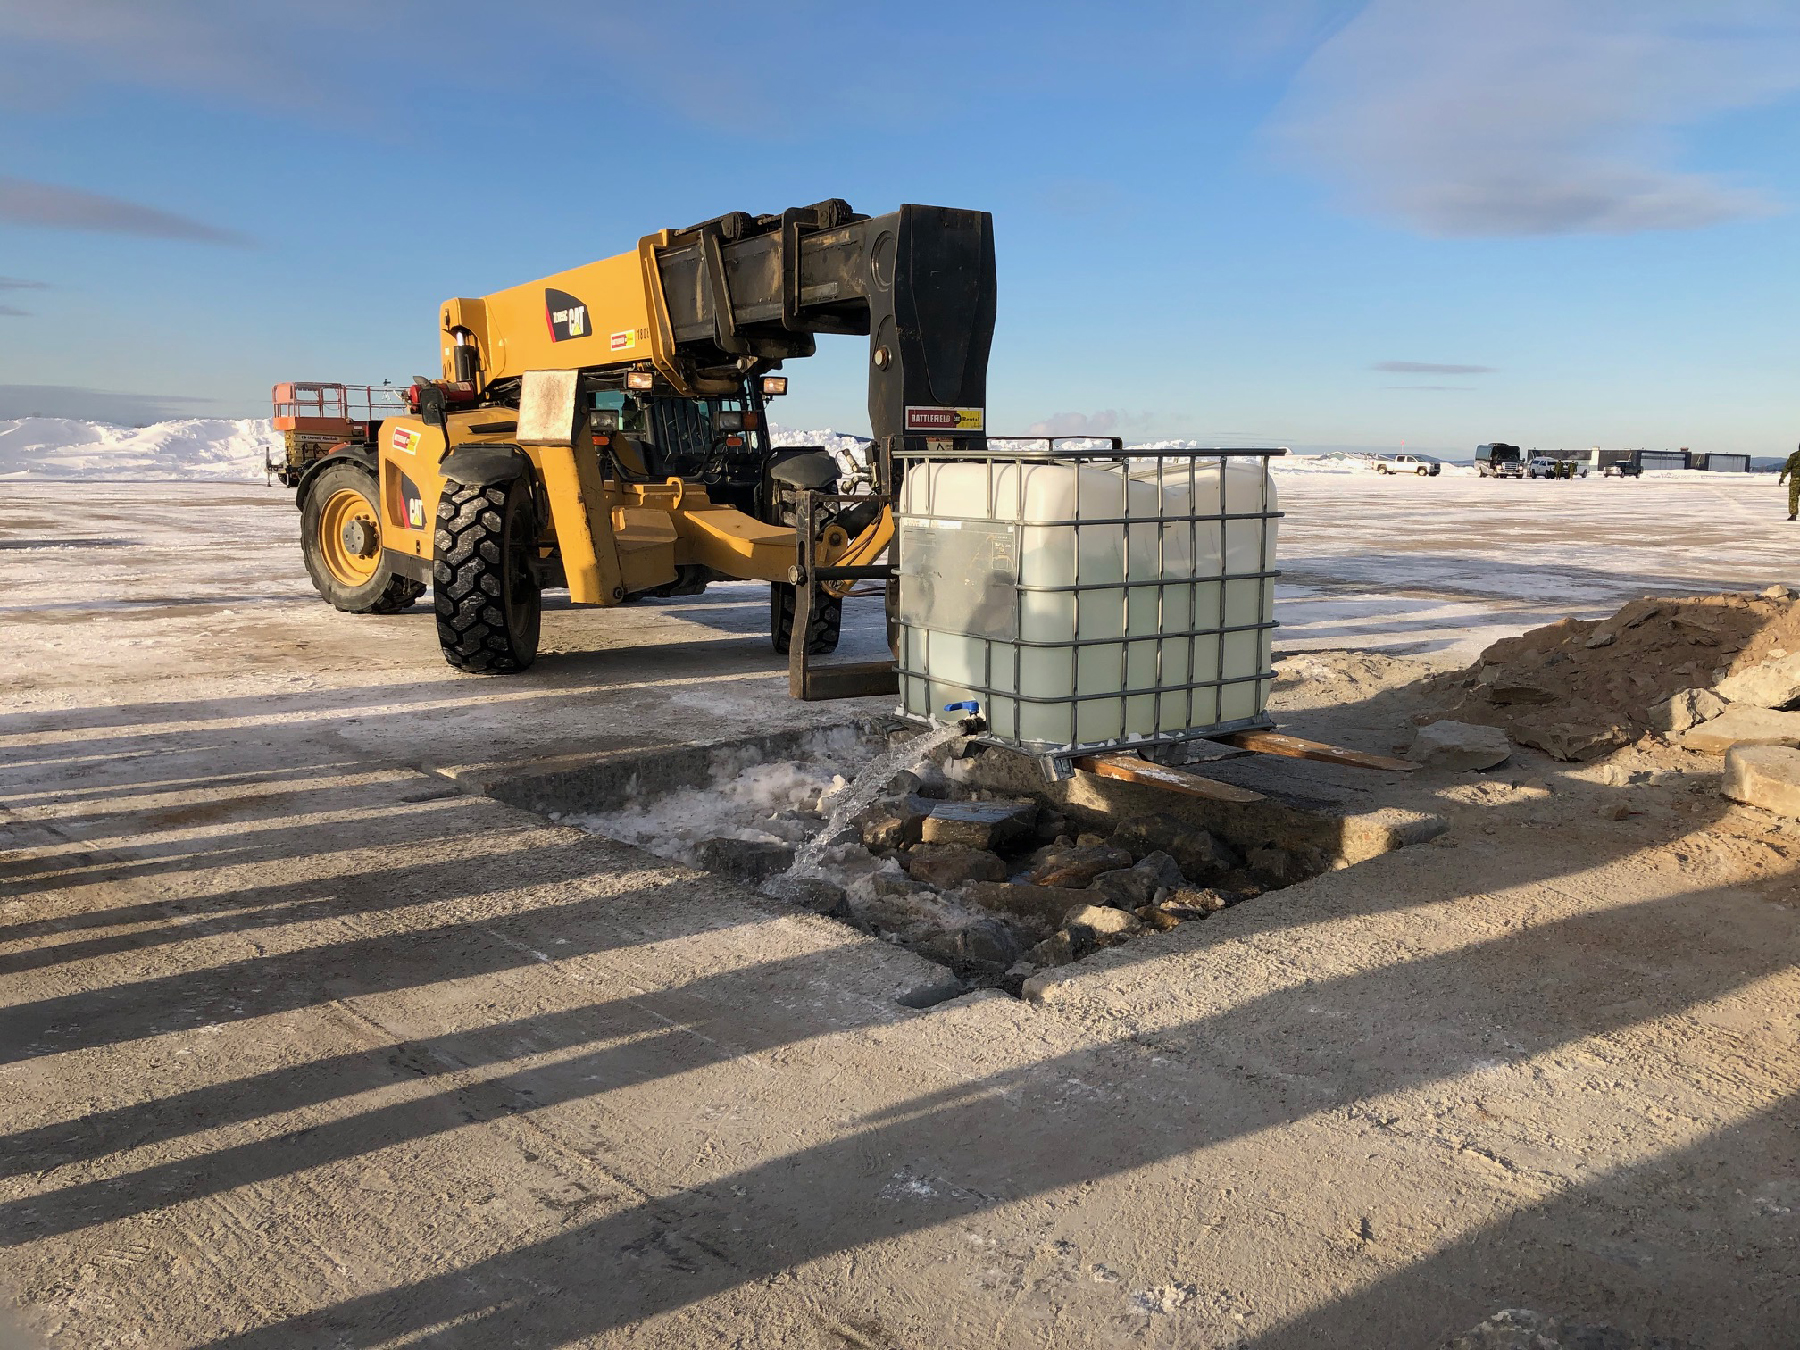 In winter, a large yellow construction-type vehicle pours water into a shallow, rectangular hole filled with stone debris.